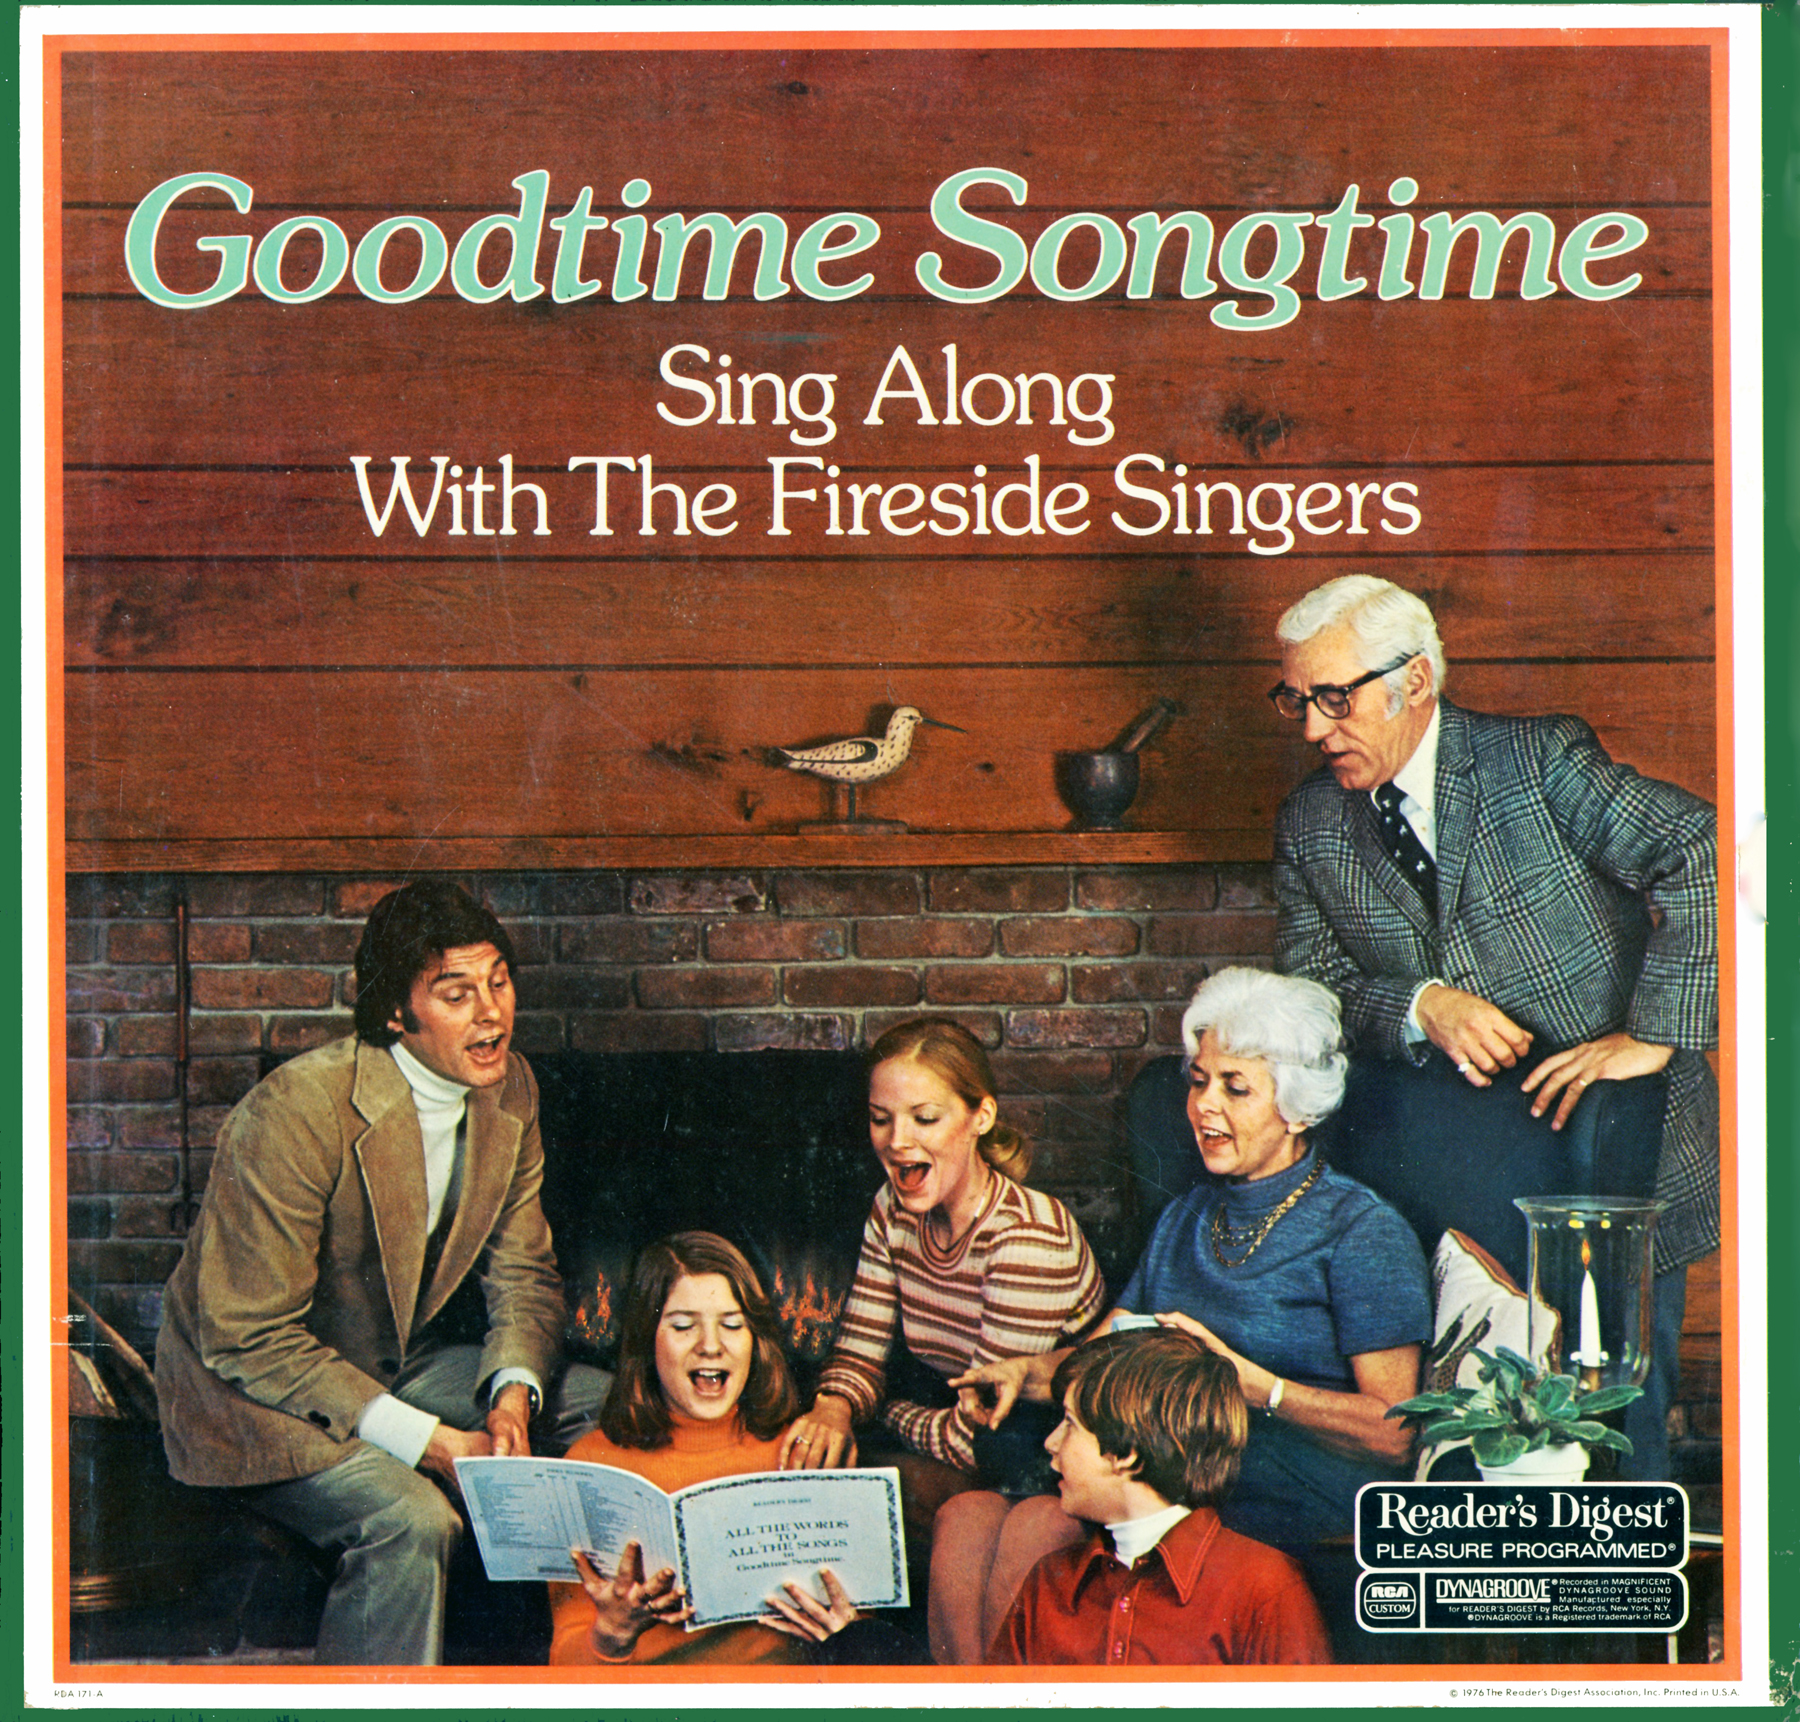 RDA171 - Goodtime Songtime - Fireside Singers - Readers Digest on CD